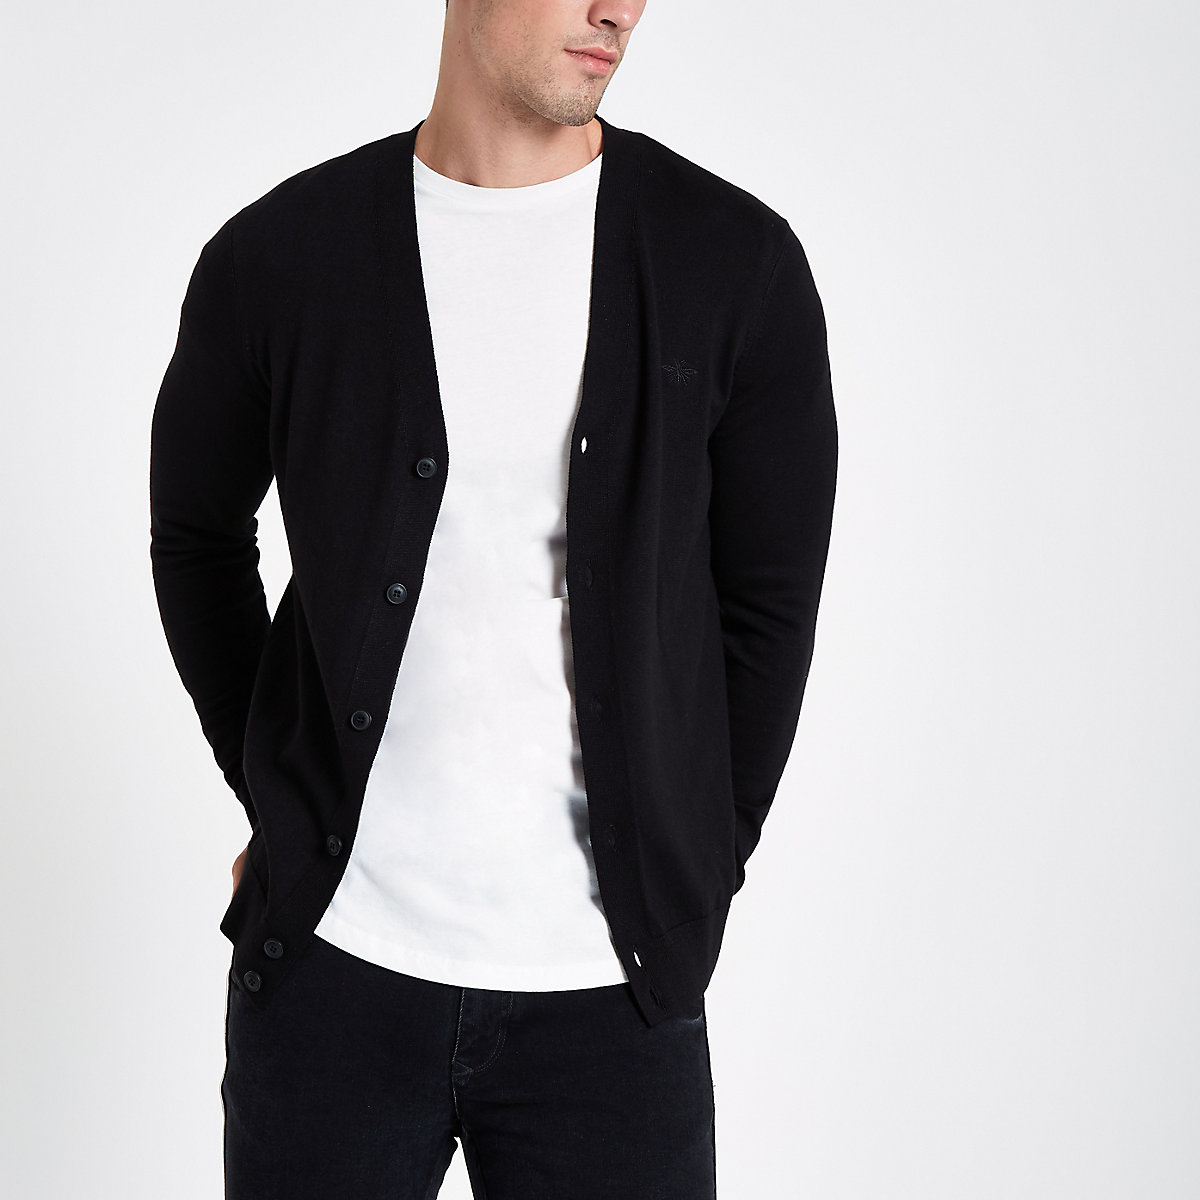 Black V neck button-down cardigan